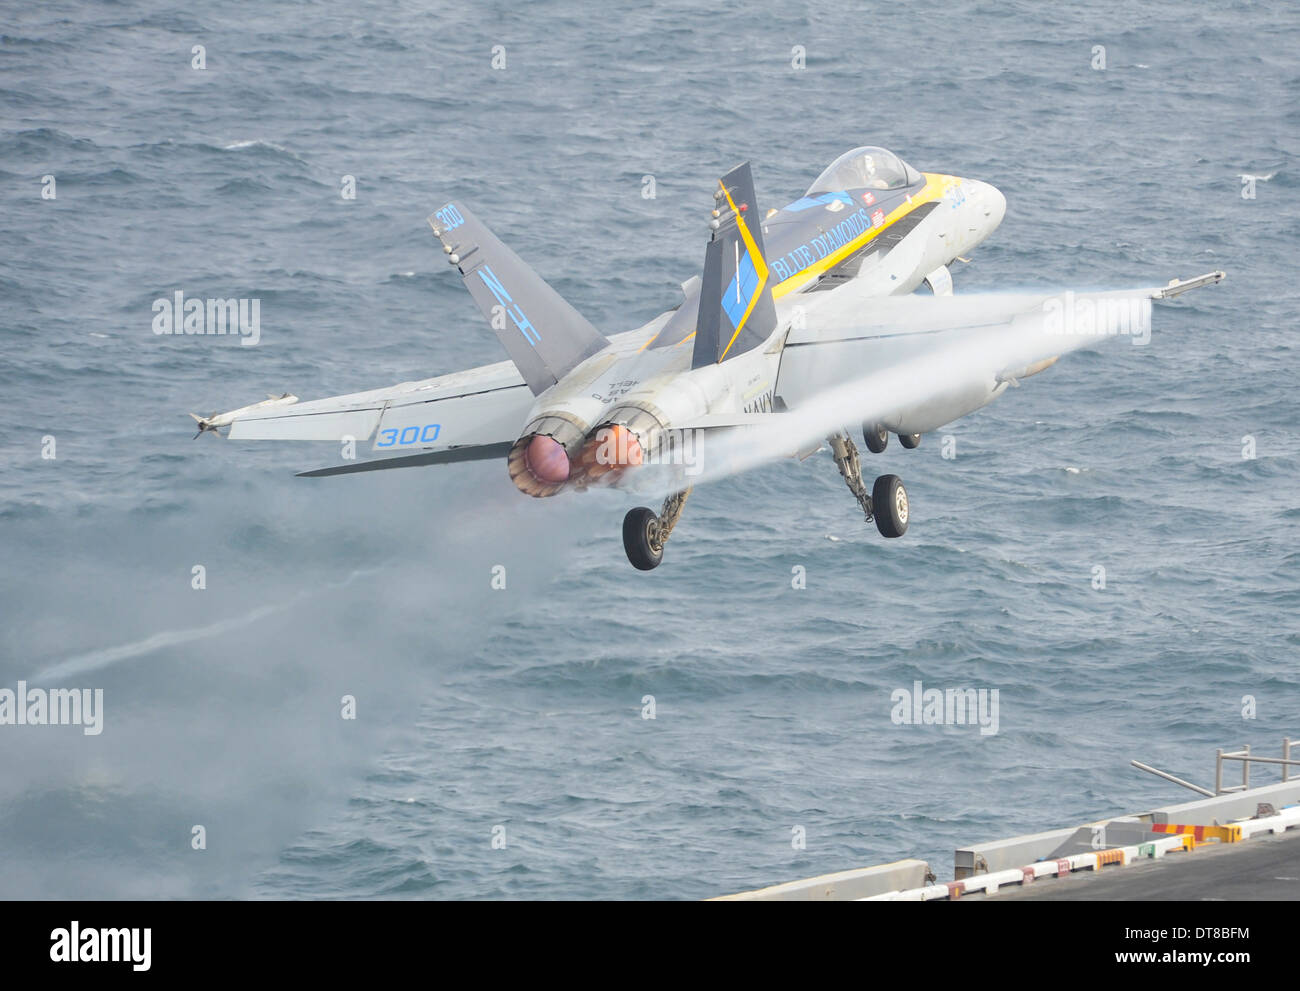 Gulf of Oman, August 20, 2013 - An F/A-18C Hornet takes off from the flight deck of the aircraft carrier USS Nimitz. - Stock Image